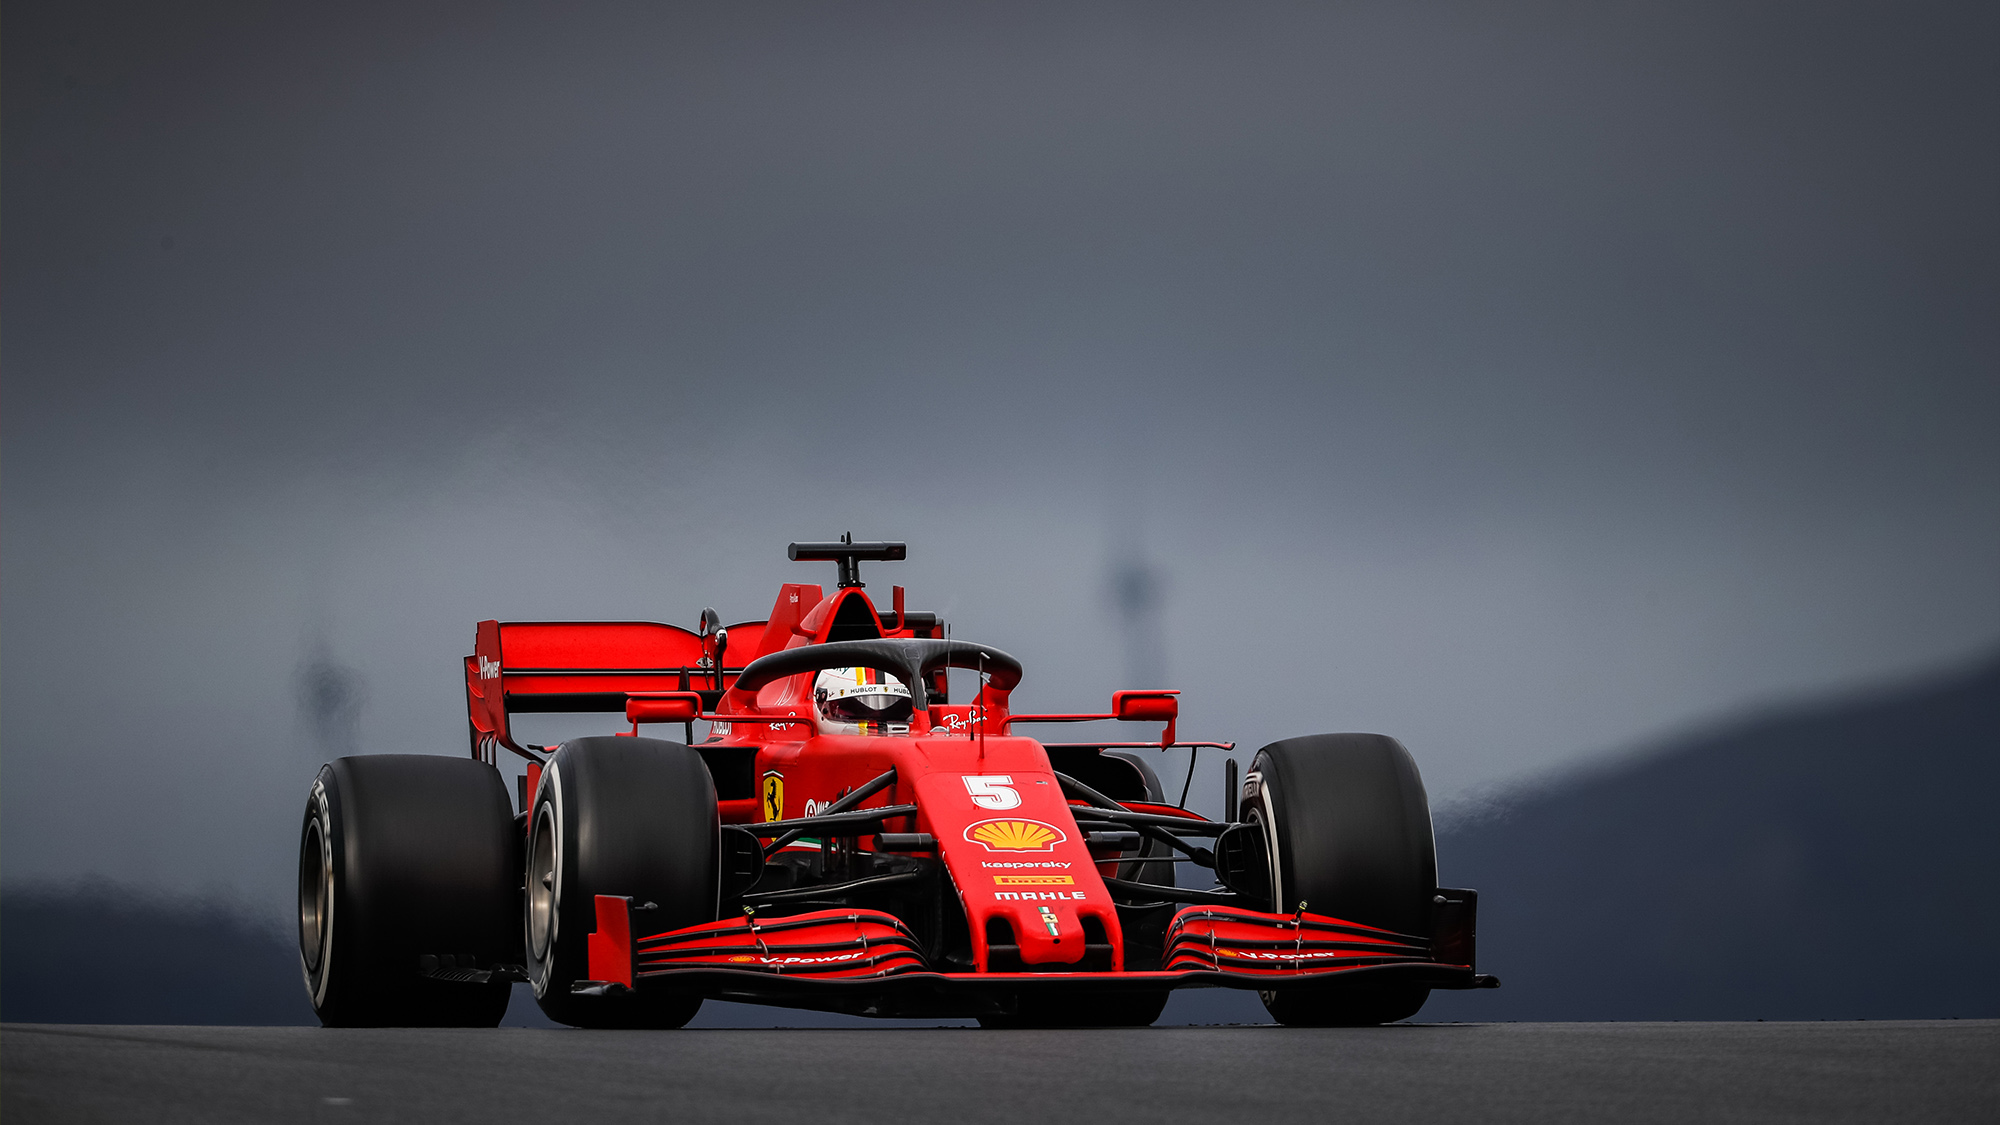 Sebastian Vettel driving under a stormy sky at the 2020 F1 Portuguese Grand Prix at Portimao